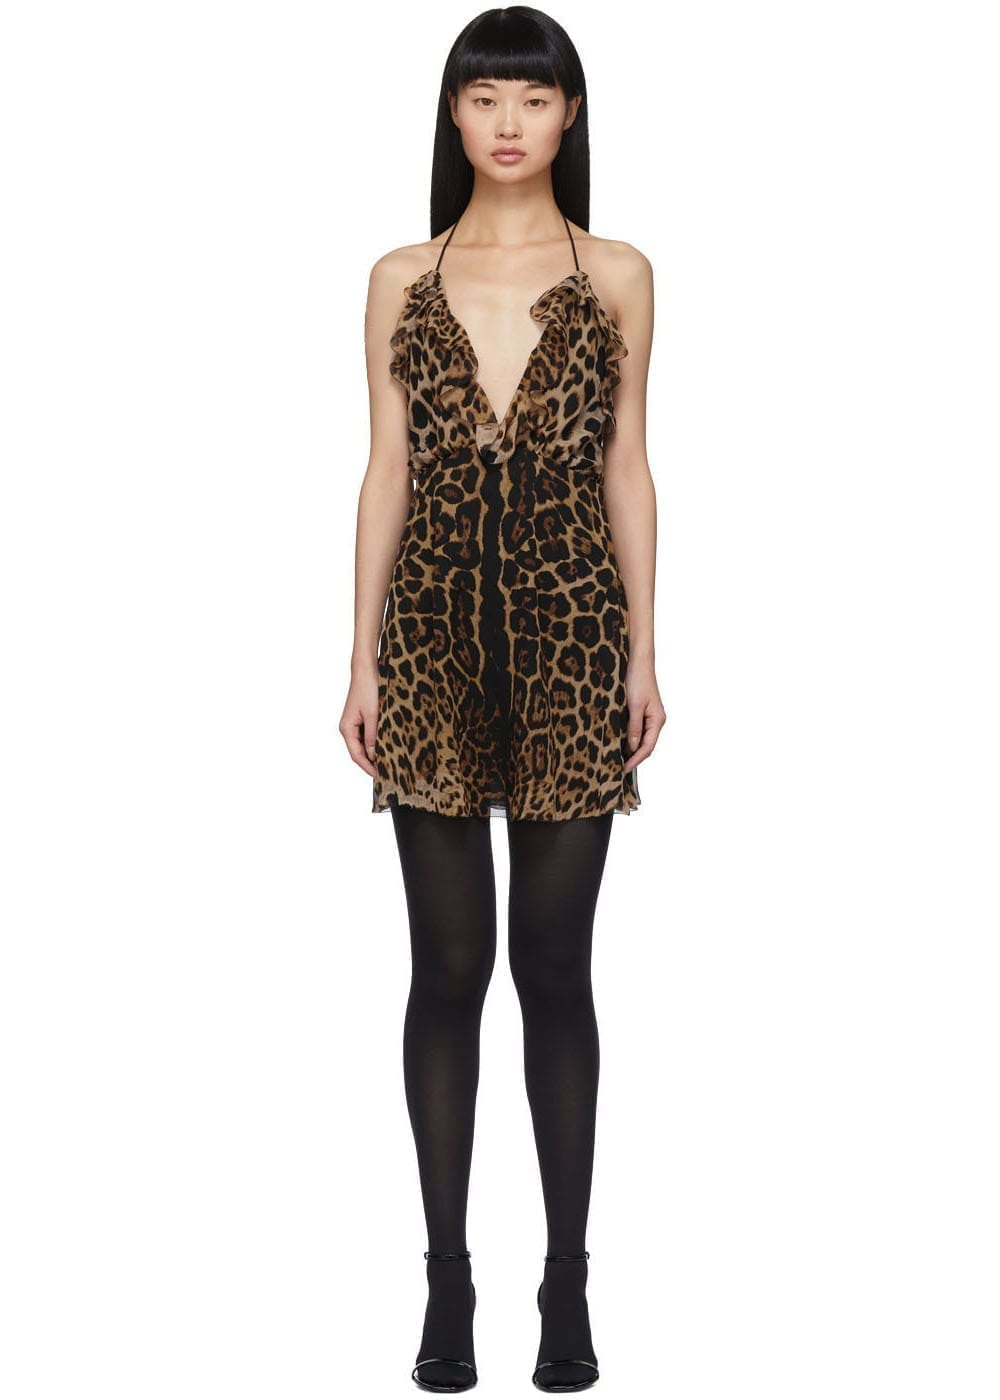 SAINT LAURENT Beige Leopard Babydoll Slip Dress